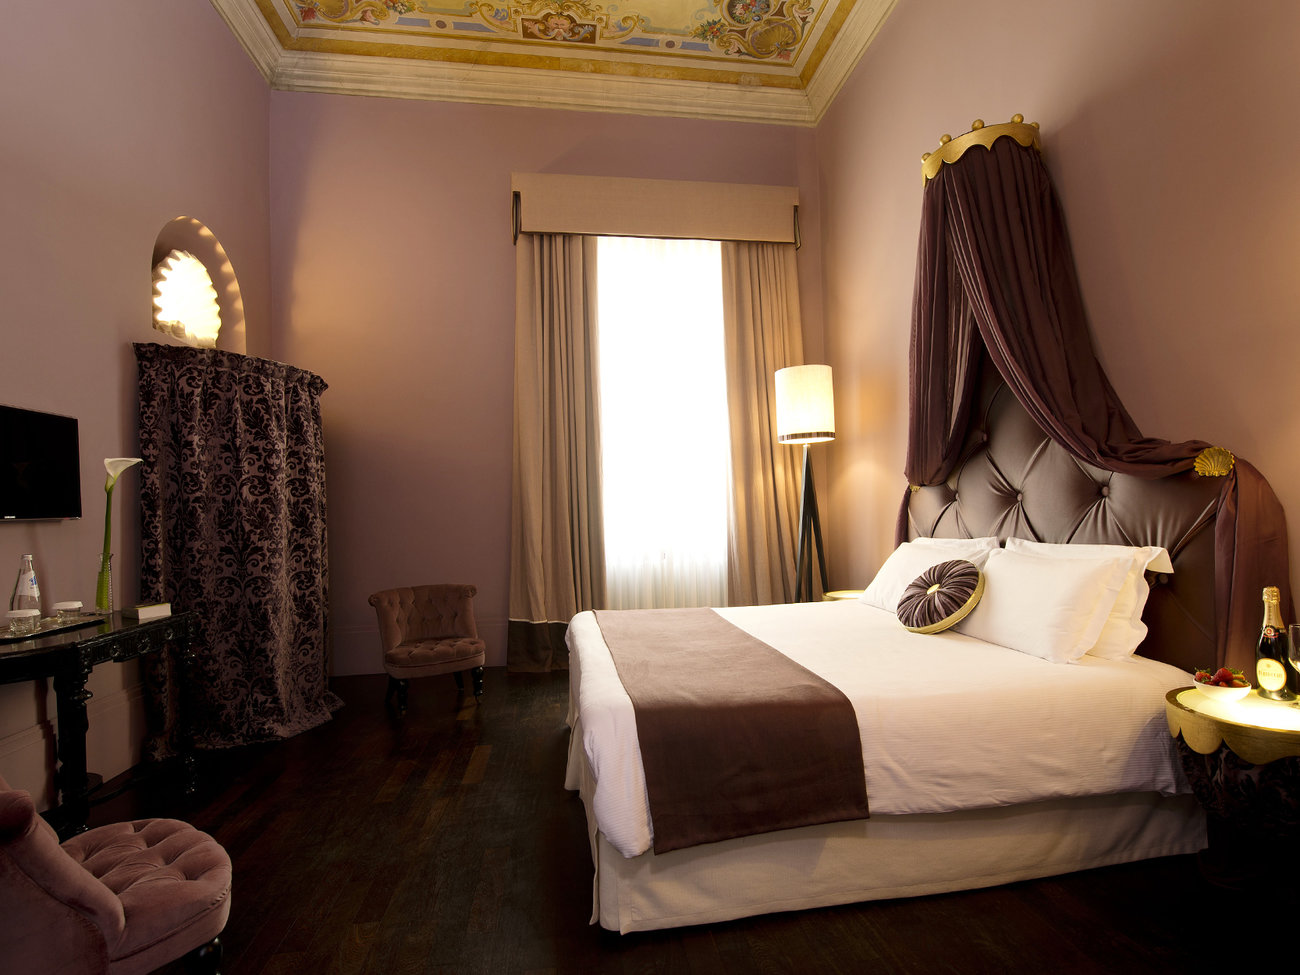 1865 Residenza d'Epoca Hotel in Florence